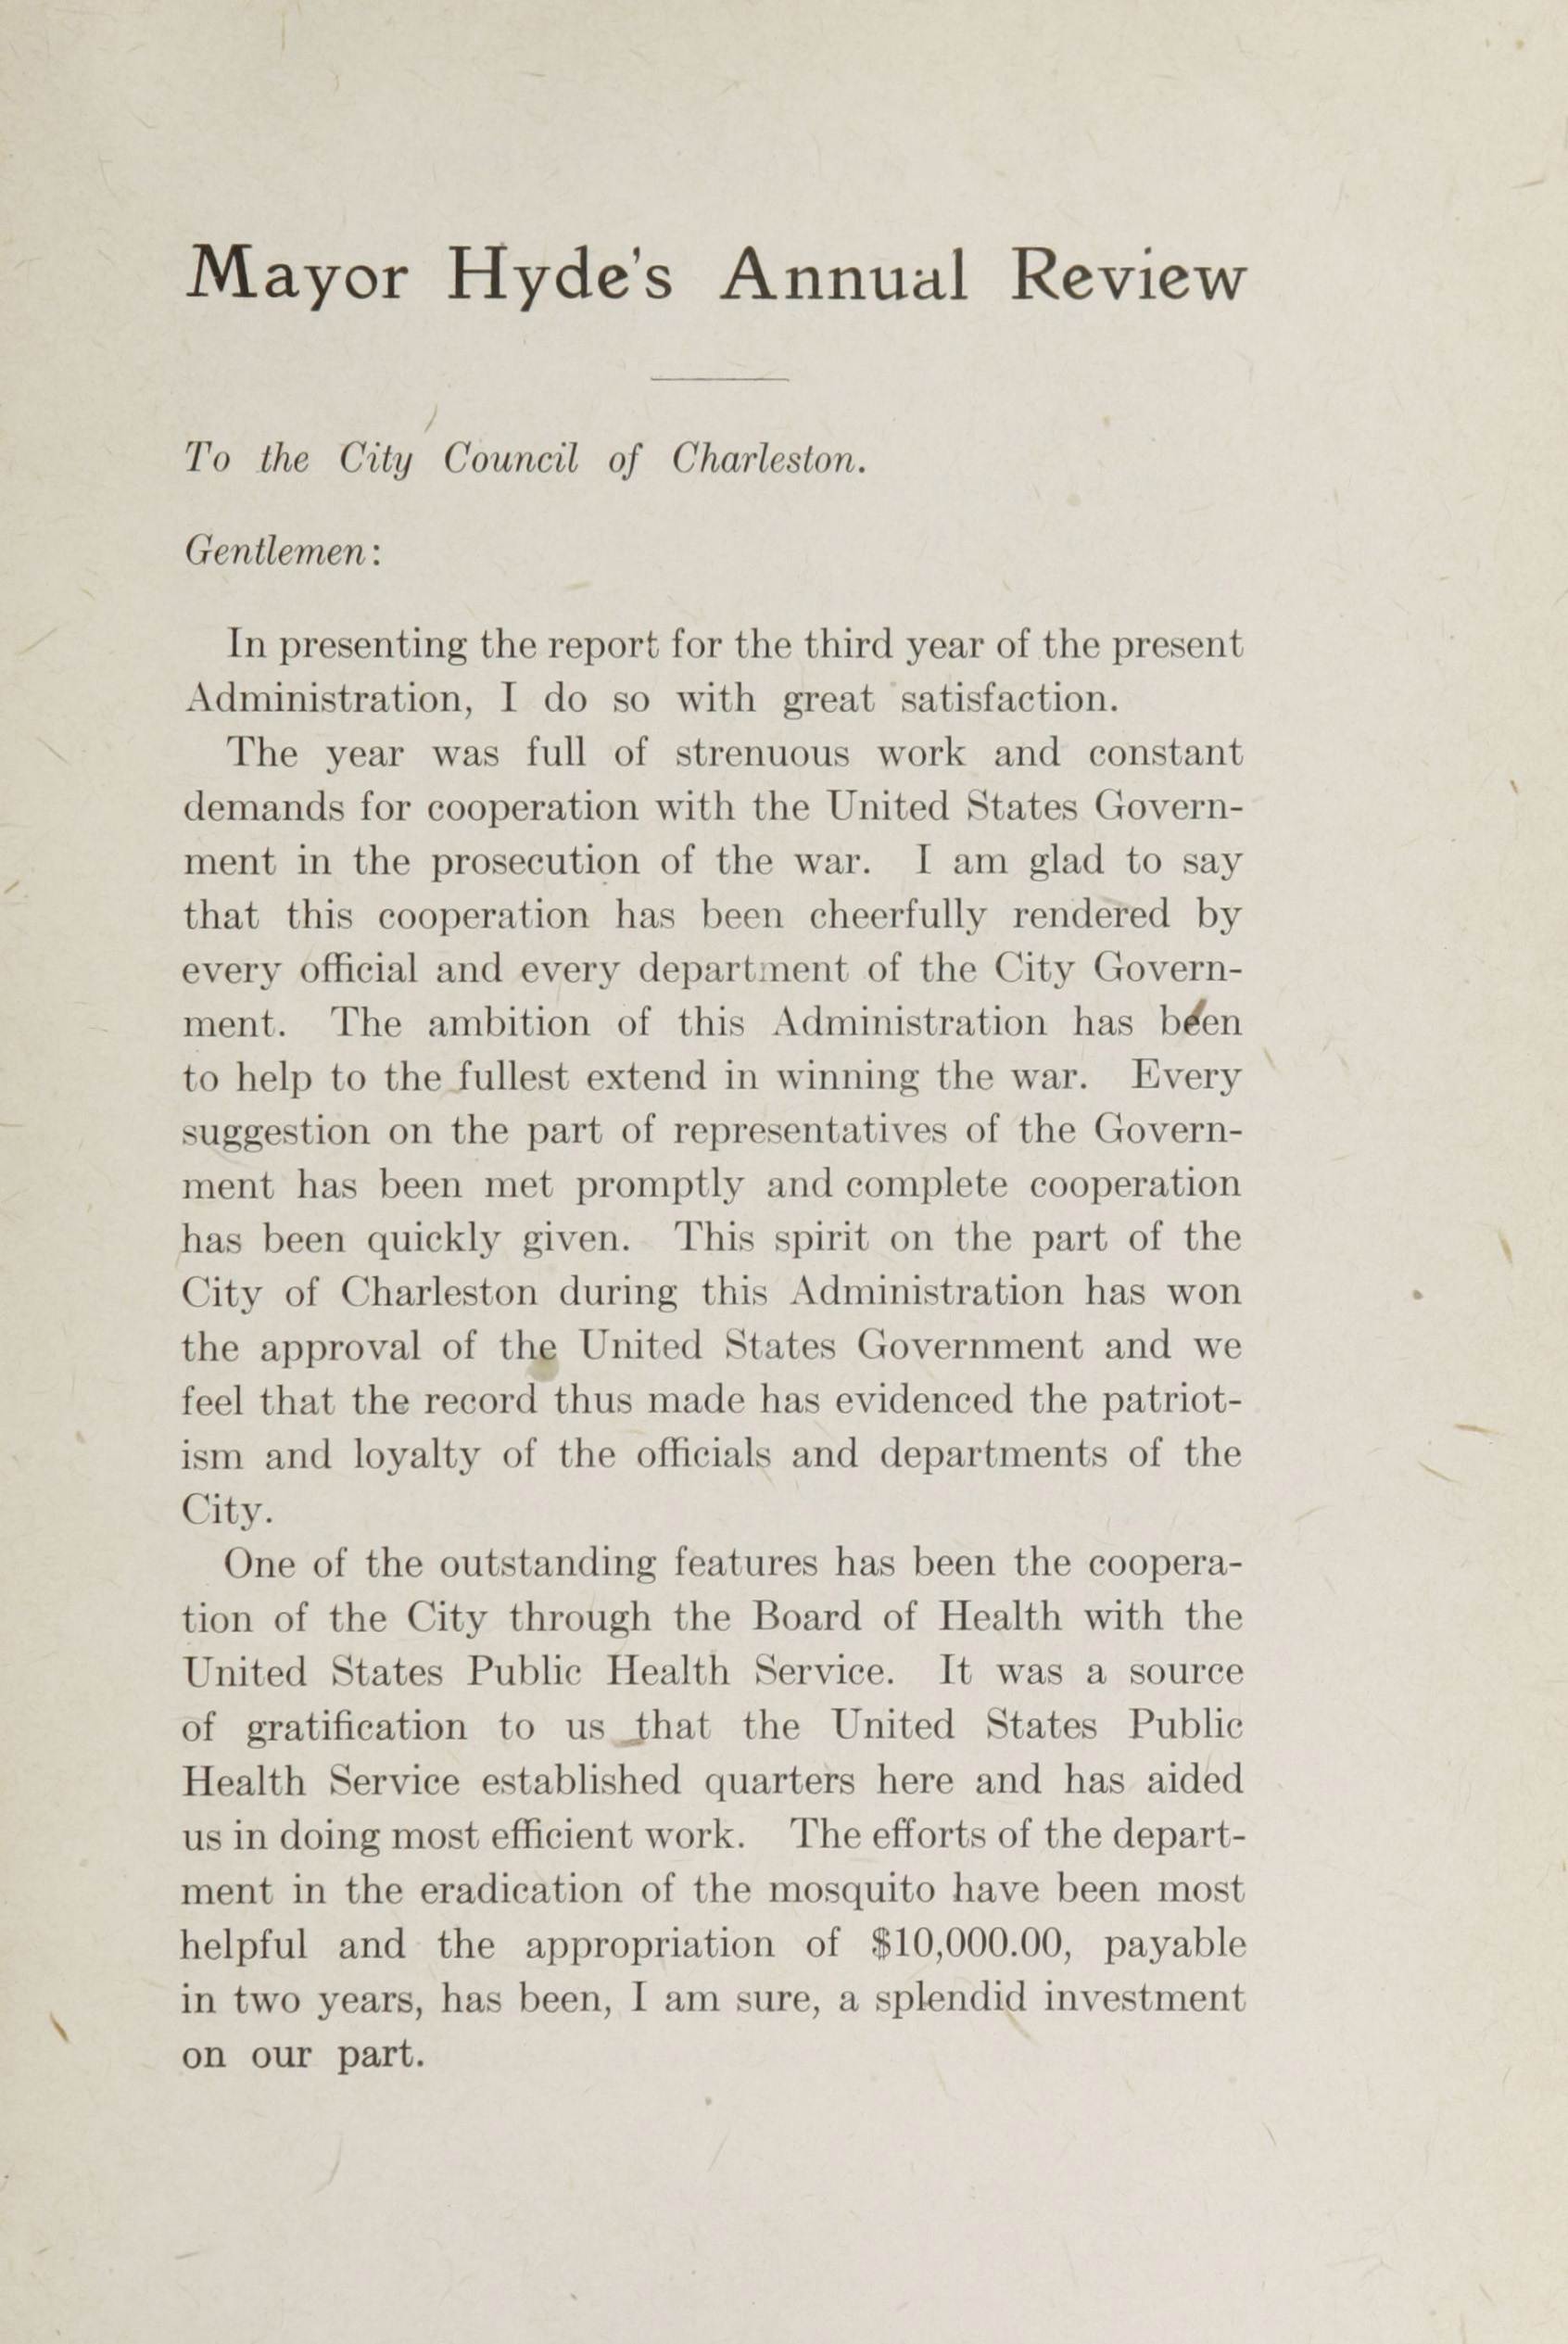 Charleston Yearbook, 1918, page xvii